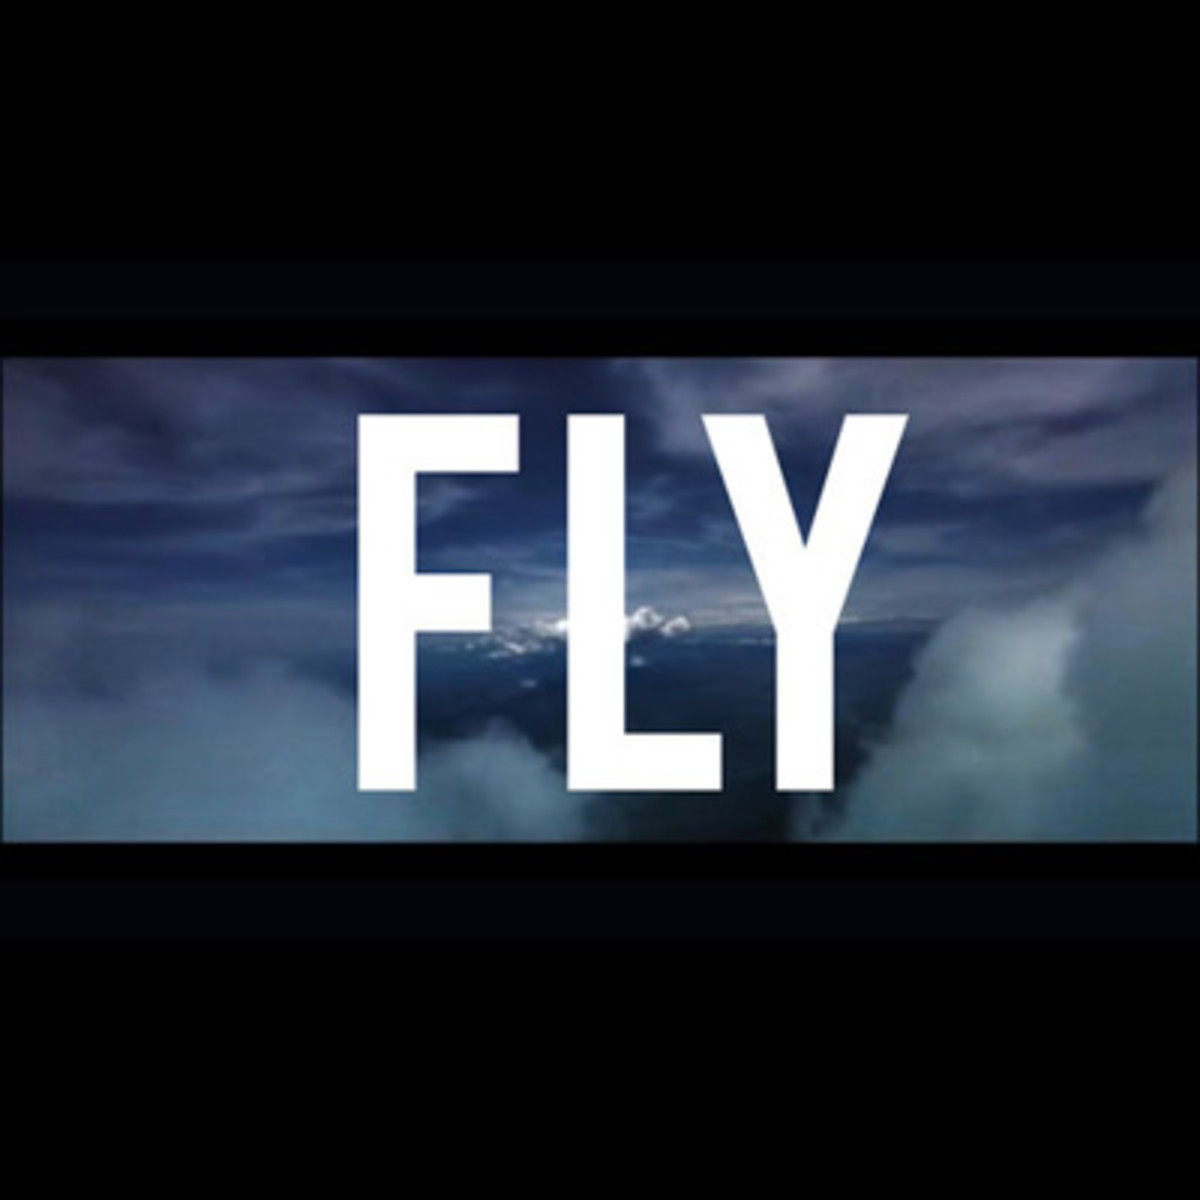 philbeaudreau-fly.jpg